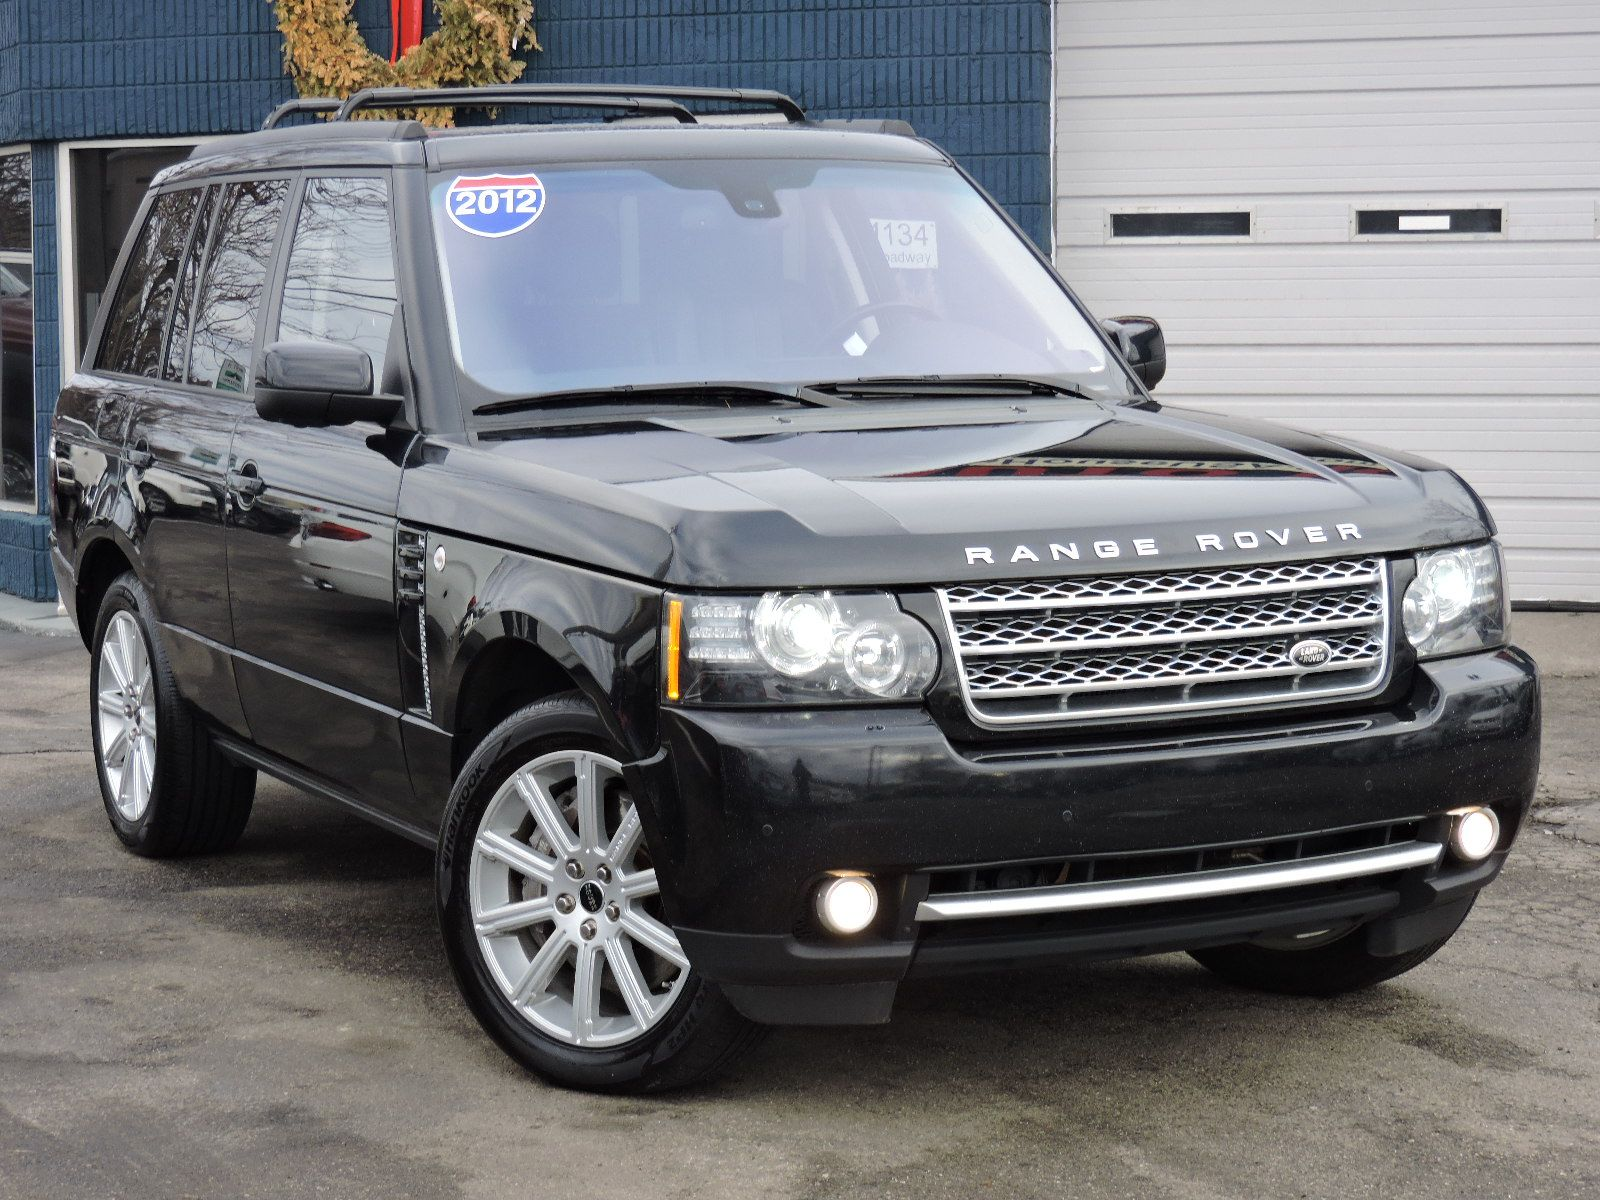 http://saugusautomall.com/uimages/vehicle/3757869/full/2012-Land-Rover-Range-Rover-SC-SALMF1E45CA360230-6129.jpeg